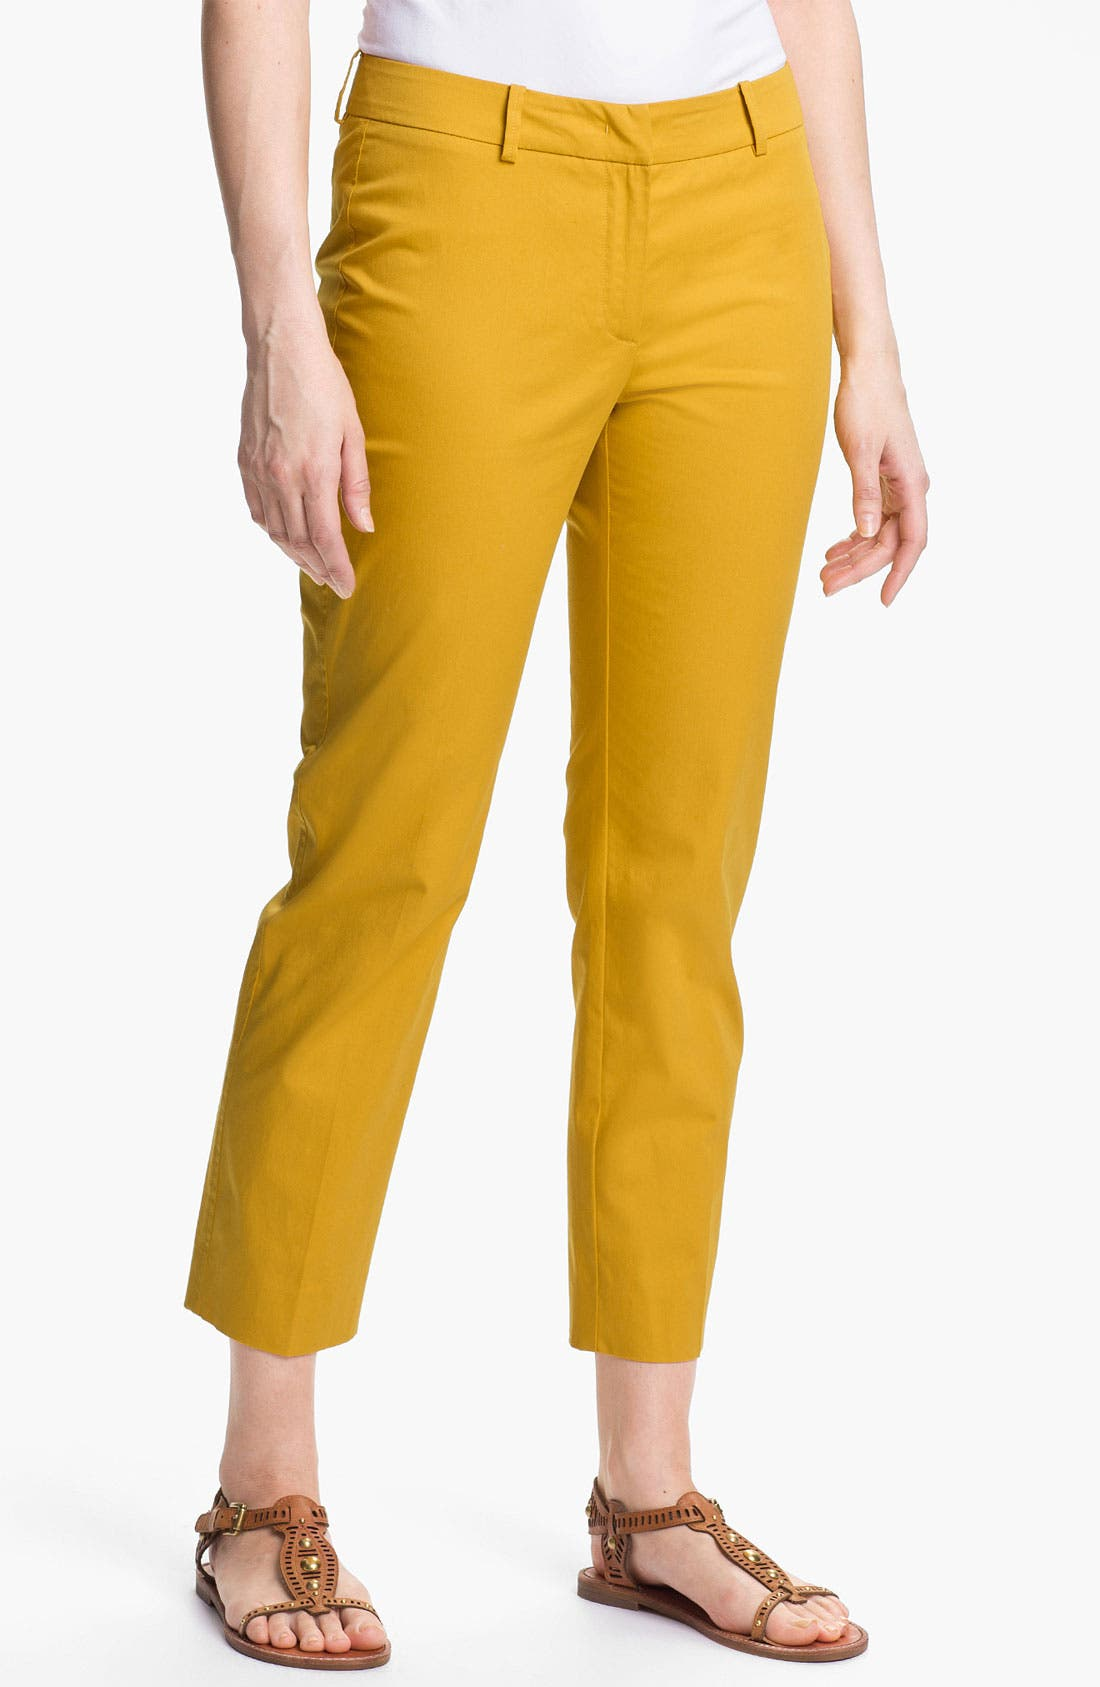 Main Image - Weekend Max Mara 'Kiwi' Pants